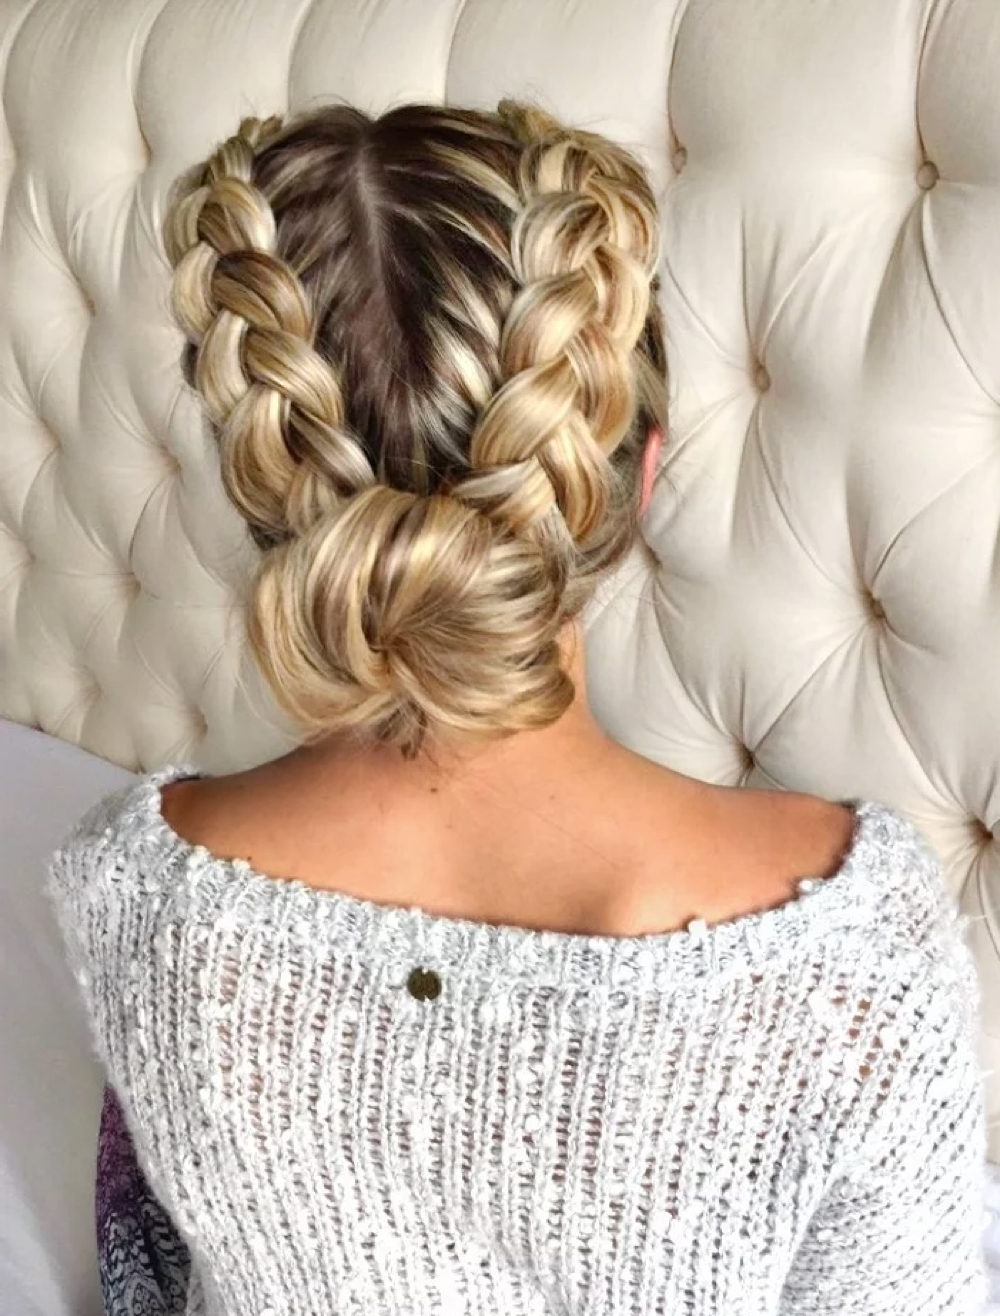 28 Gorgeous Braided Updo Ideas For 2018 Pertaining To Newest Blonde Ponytails With Double Braid (View 2 of 20)